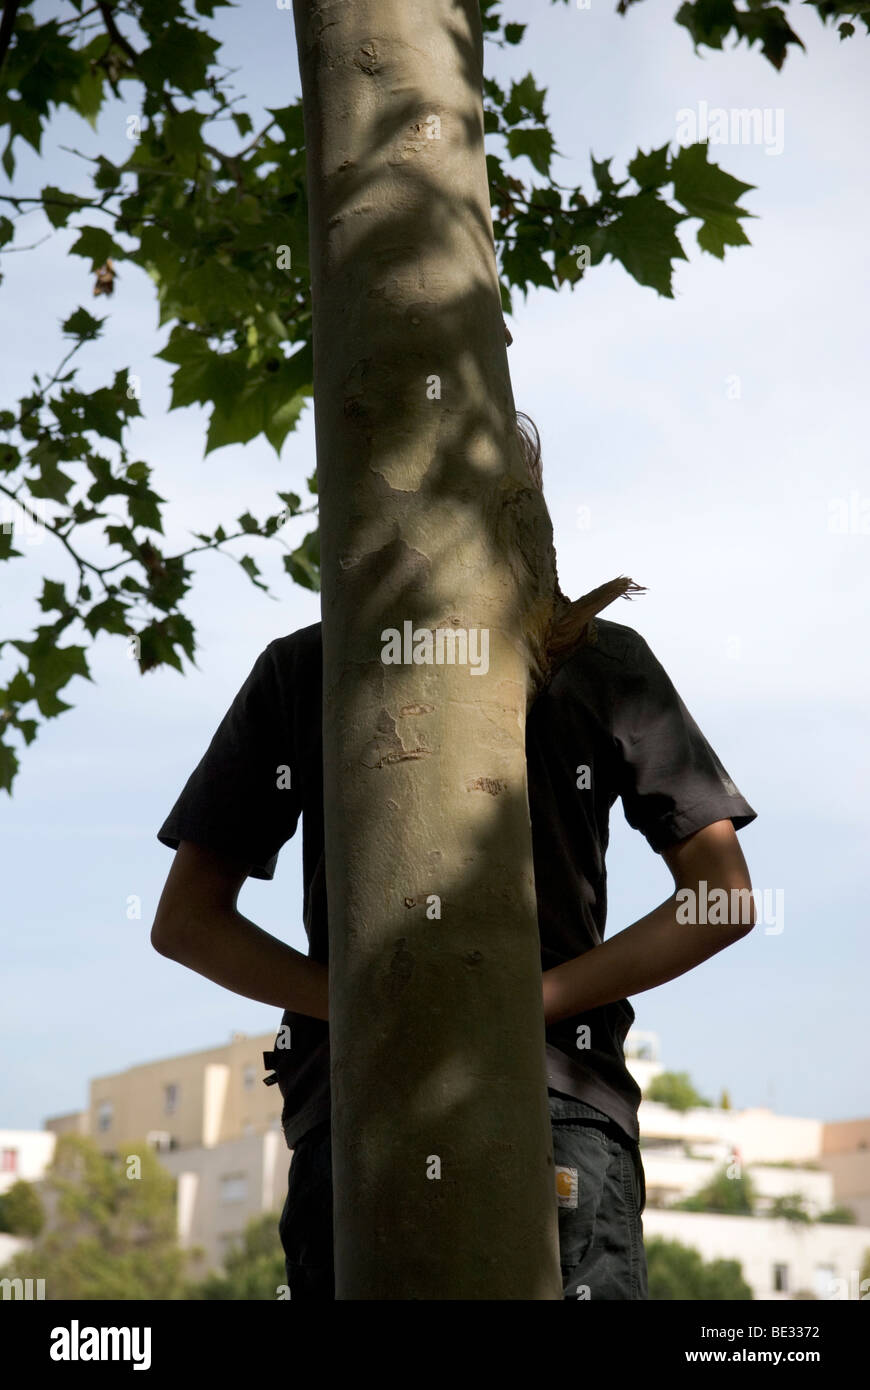 youth hiding behind a tree trunk - Stock Image